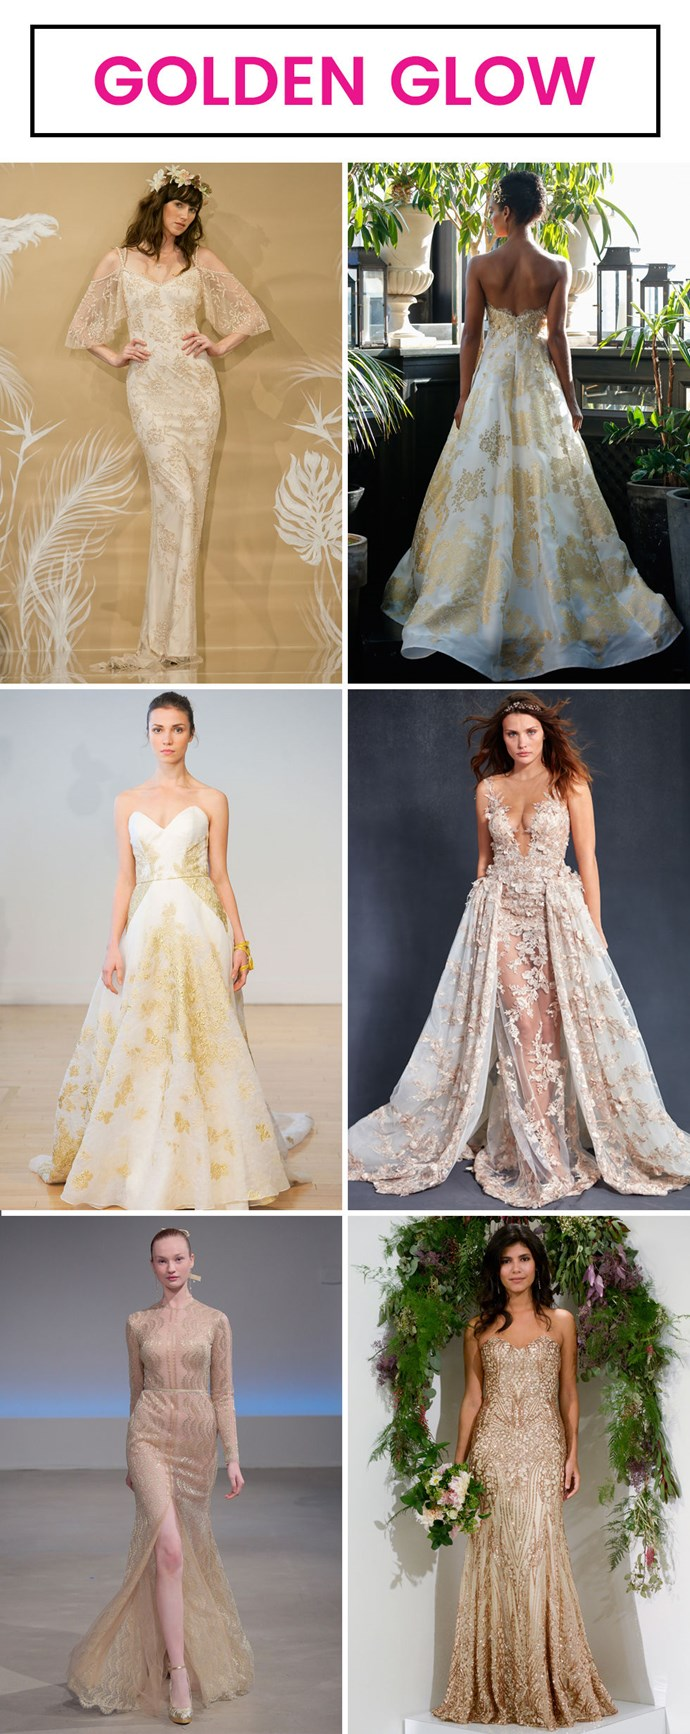 **8. Gilded tones.** As seen at Theia, Francesco Miranda, Carol Hannah, Galia Lahav, and Watters. For those who like their weddings like they like life: Ornate and divine.